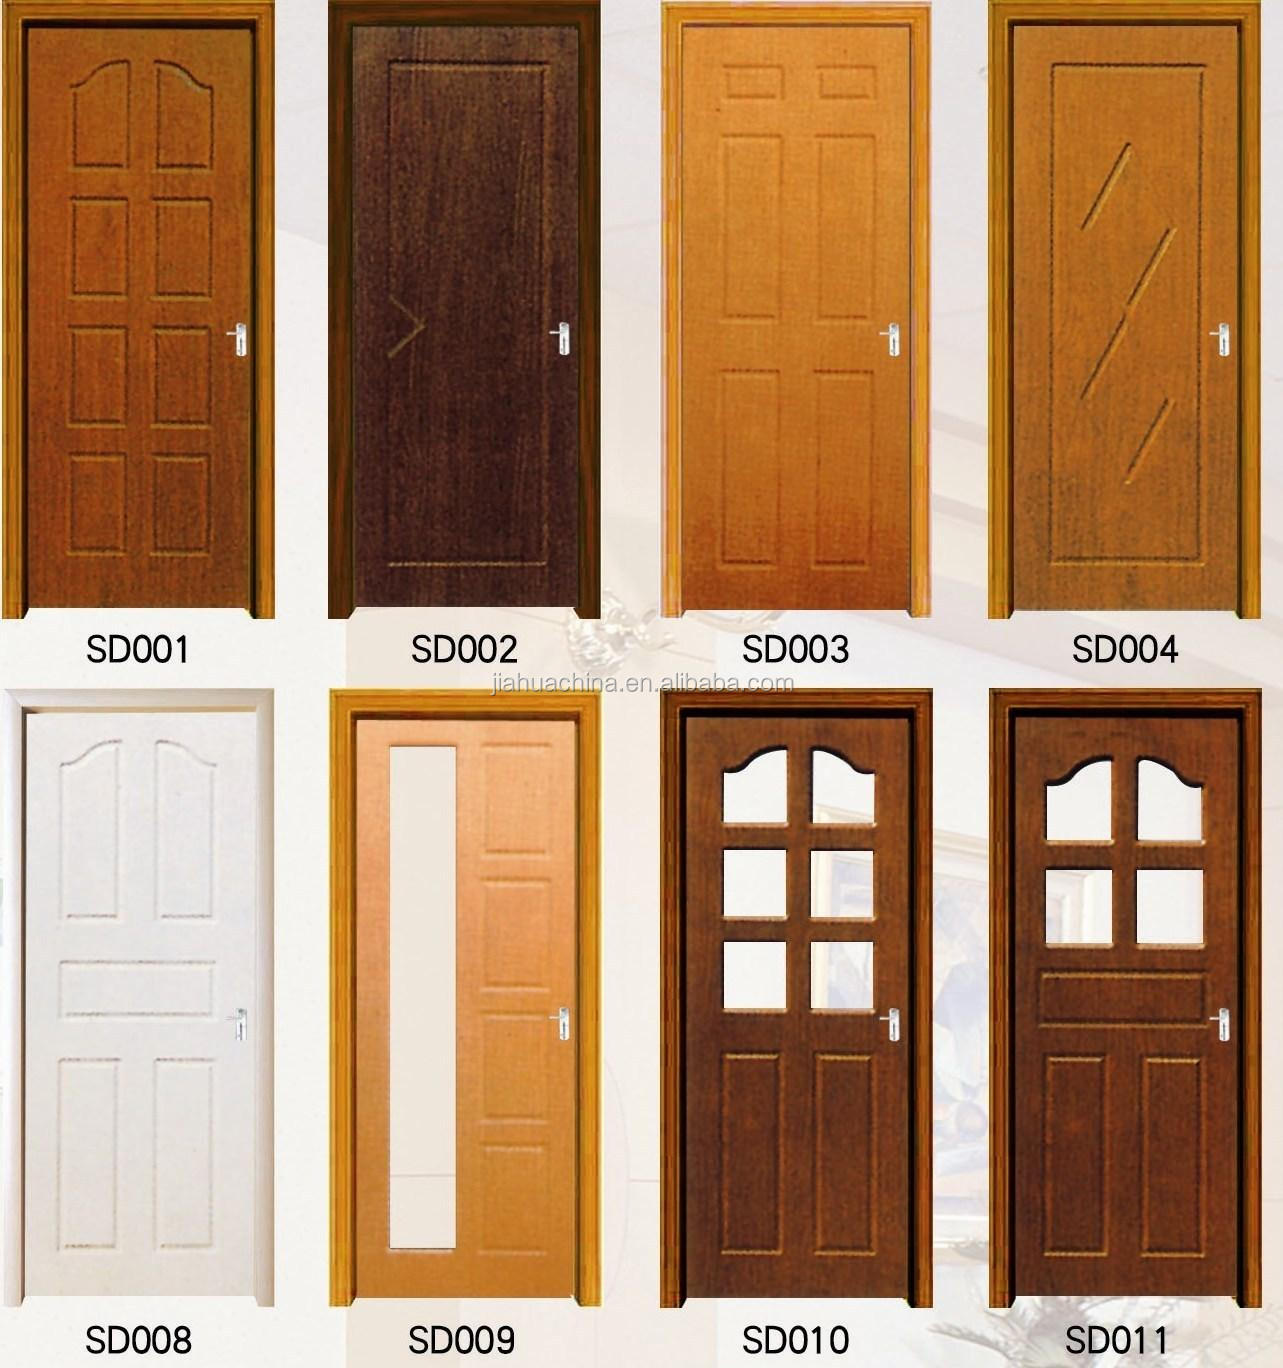 BD-36 pvc wooden interior door & BD-36 pvc wooden interior door View BD-36 pvc wooden interior ...